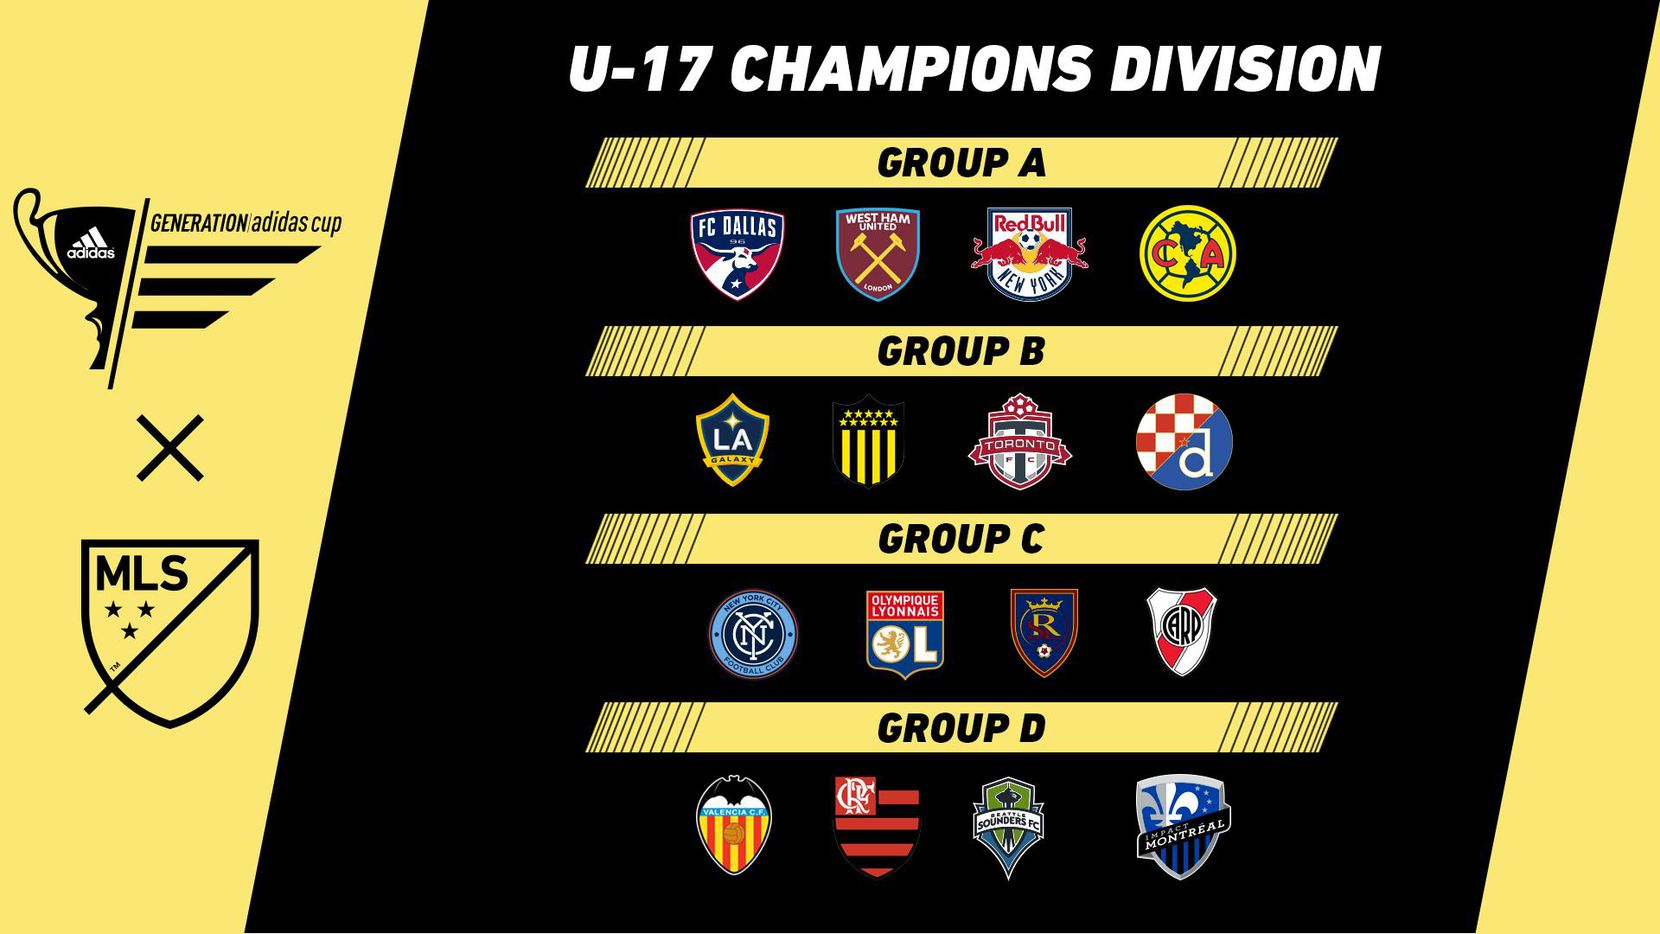 The 2019 GA Cup Champions Division groups.